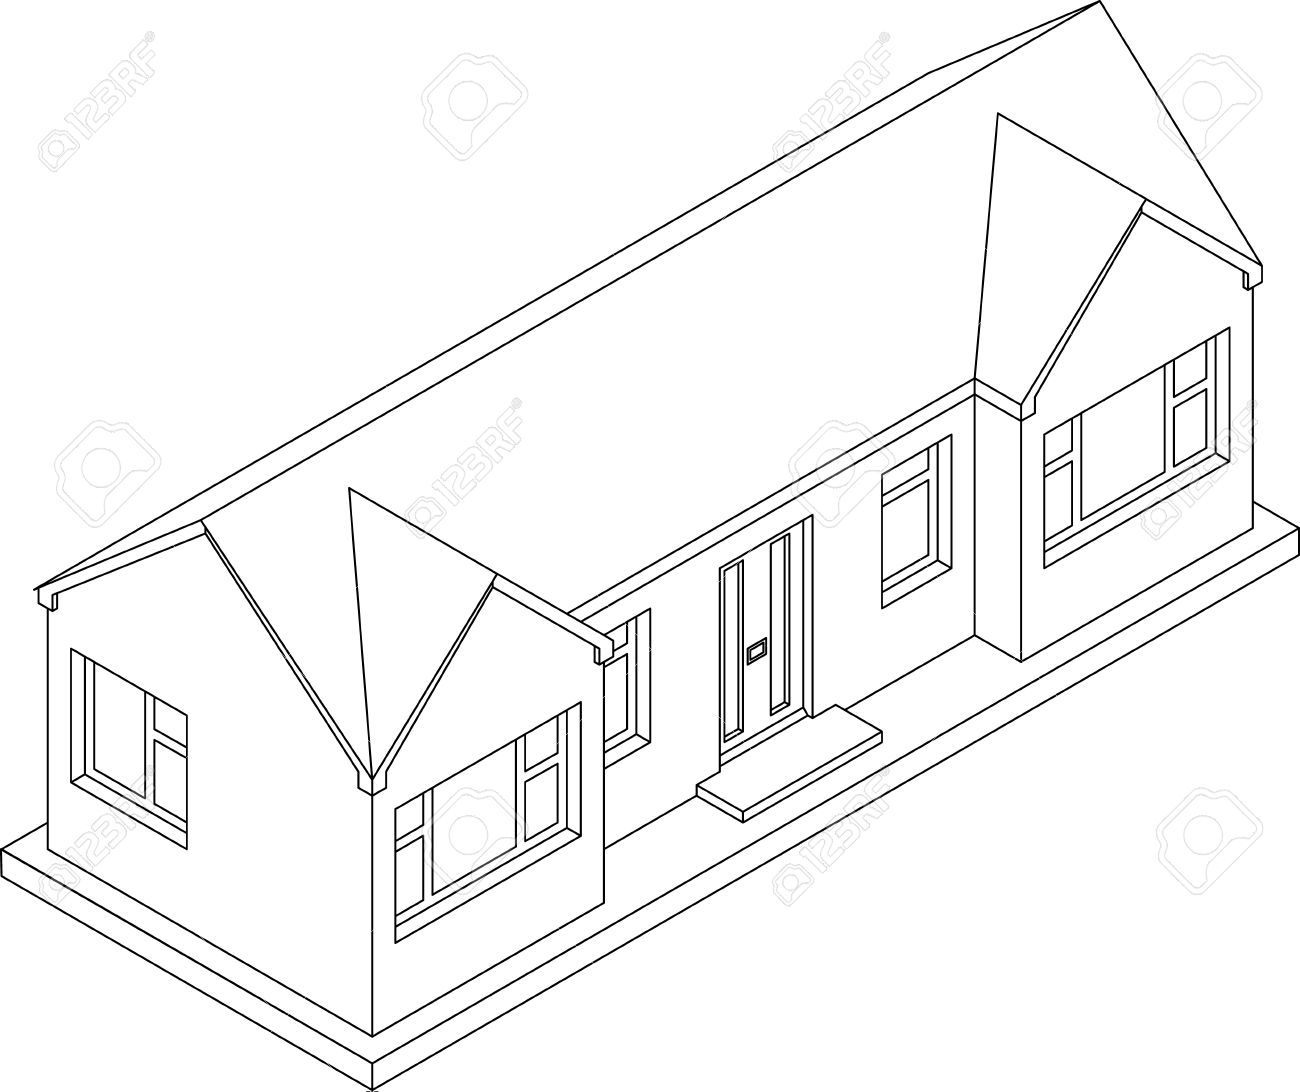 basic house drawing at getdrawings com